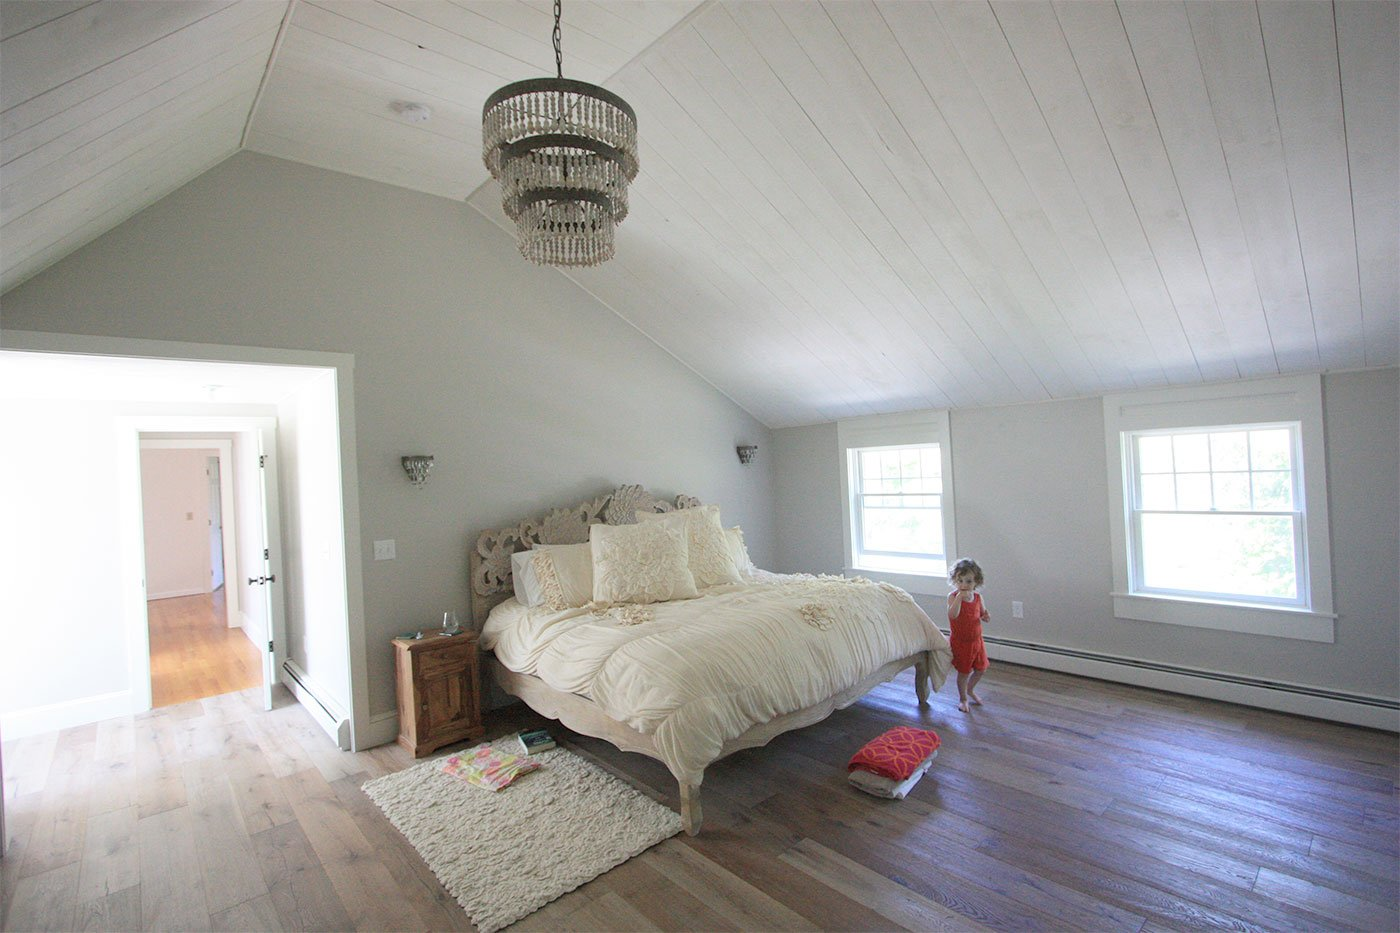 1 New addition by home renovation, in-house design build firm in RI